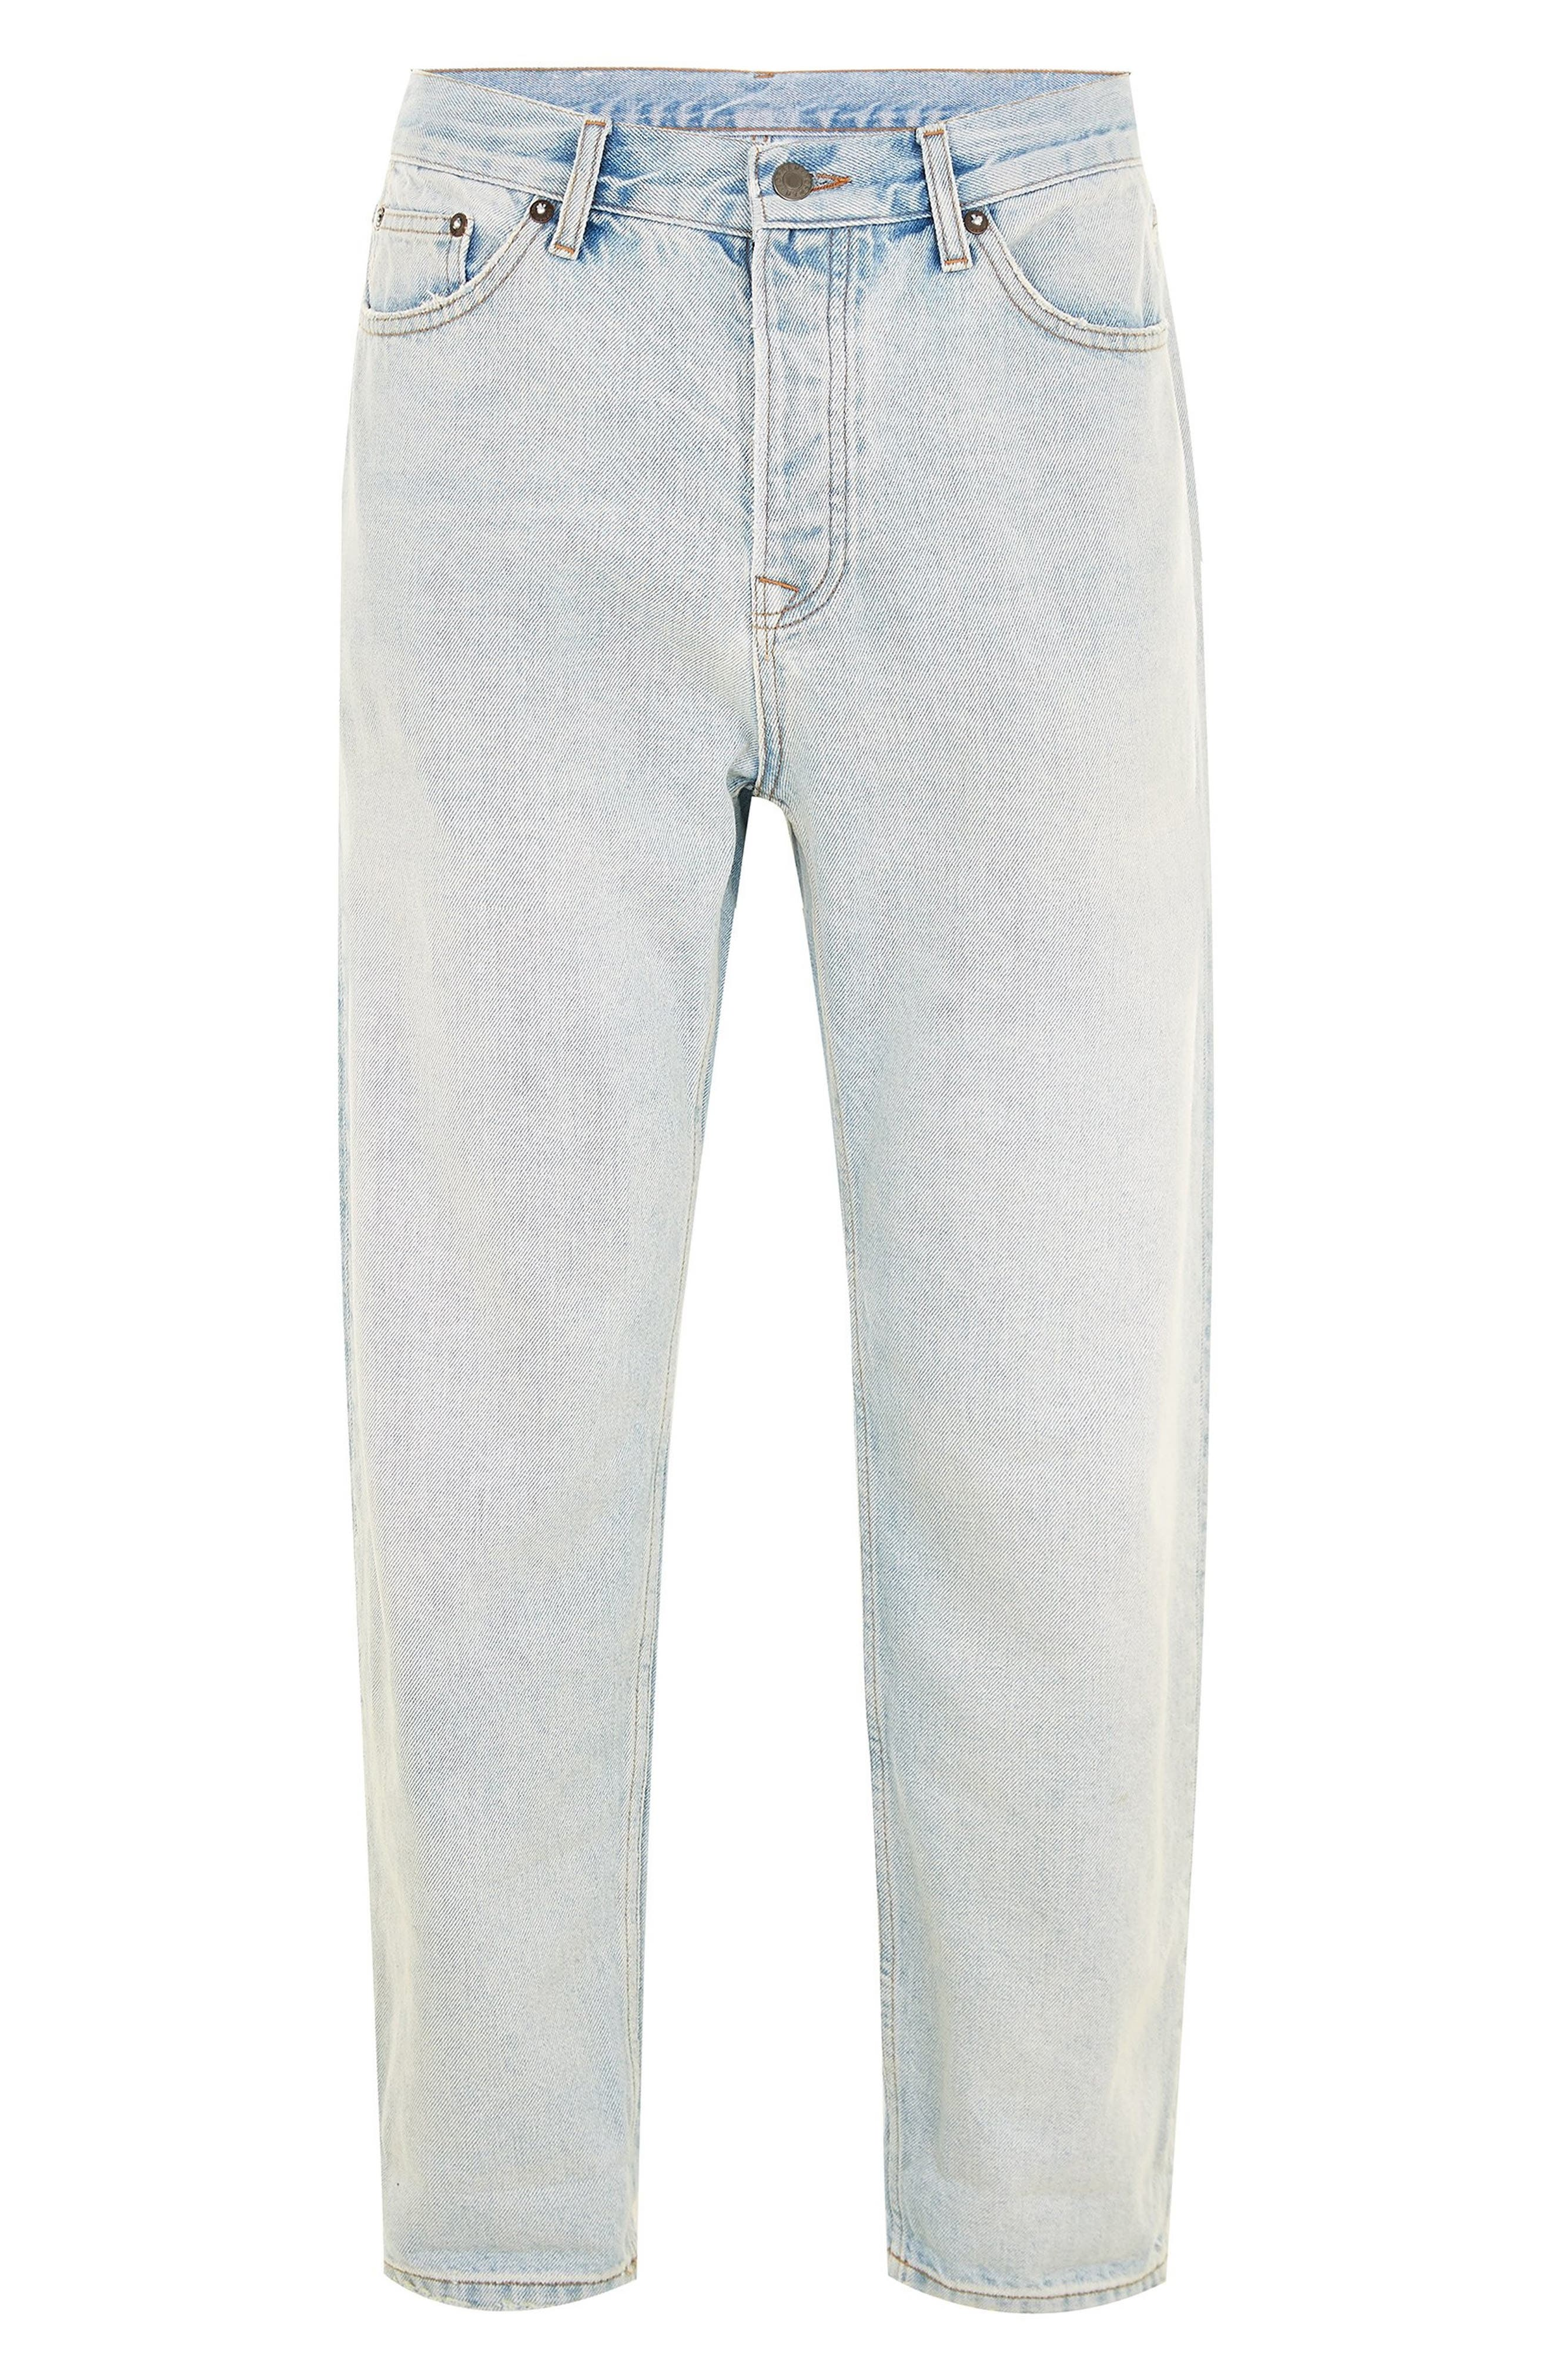 Original Fit Jeans,                             Alternate thumbnail 4, color,                             BLUE